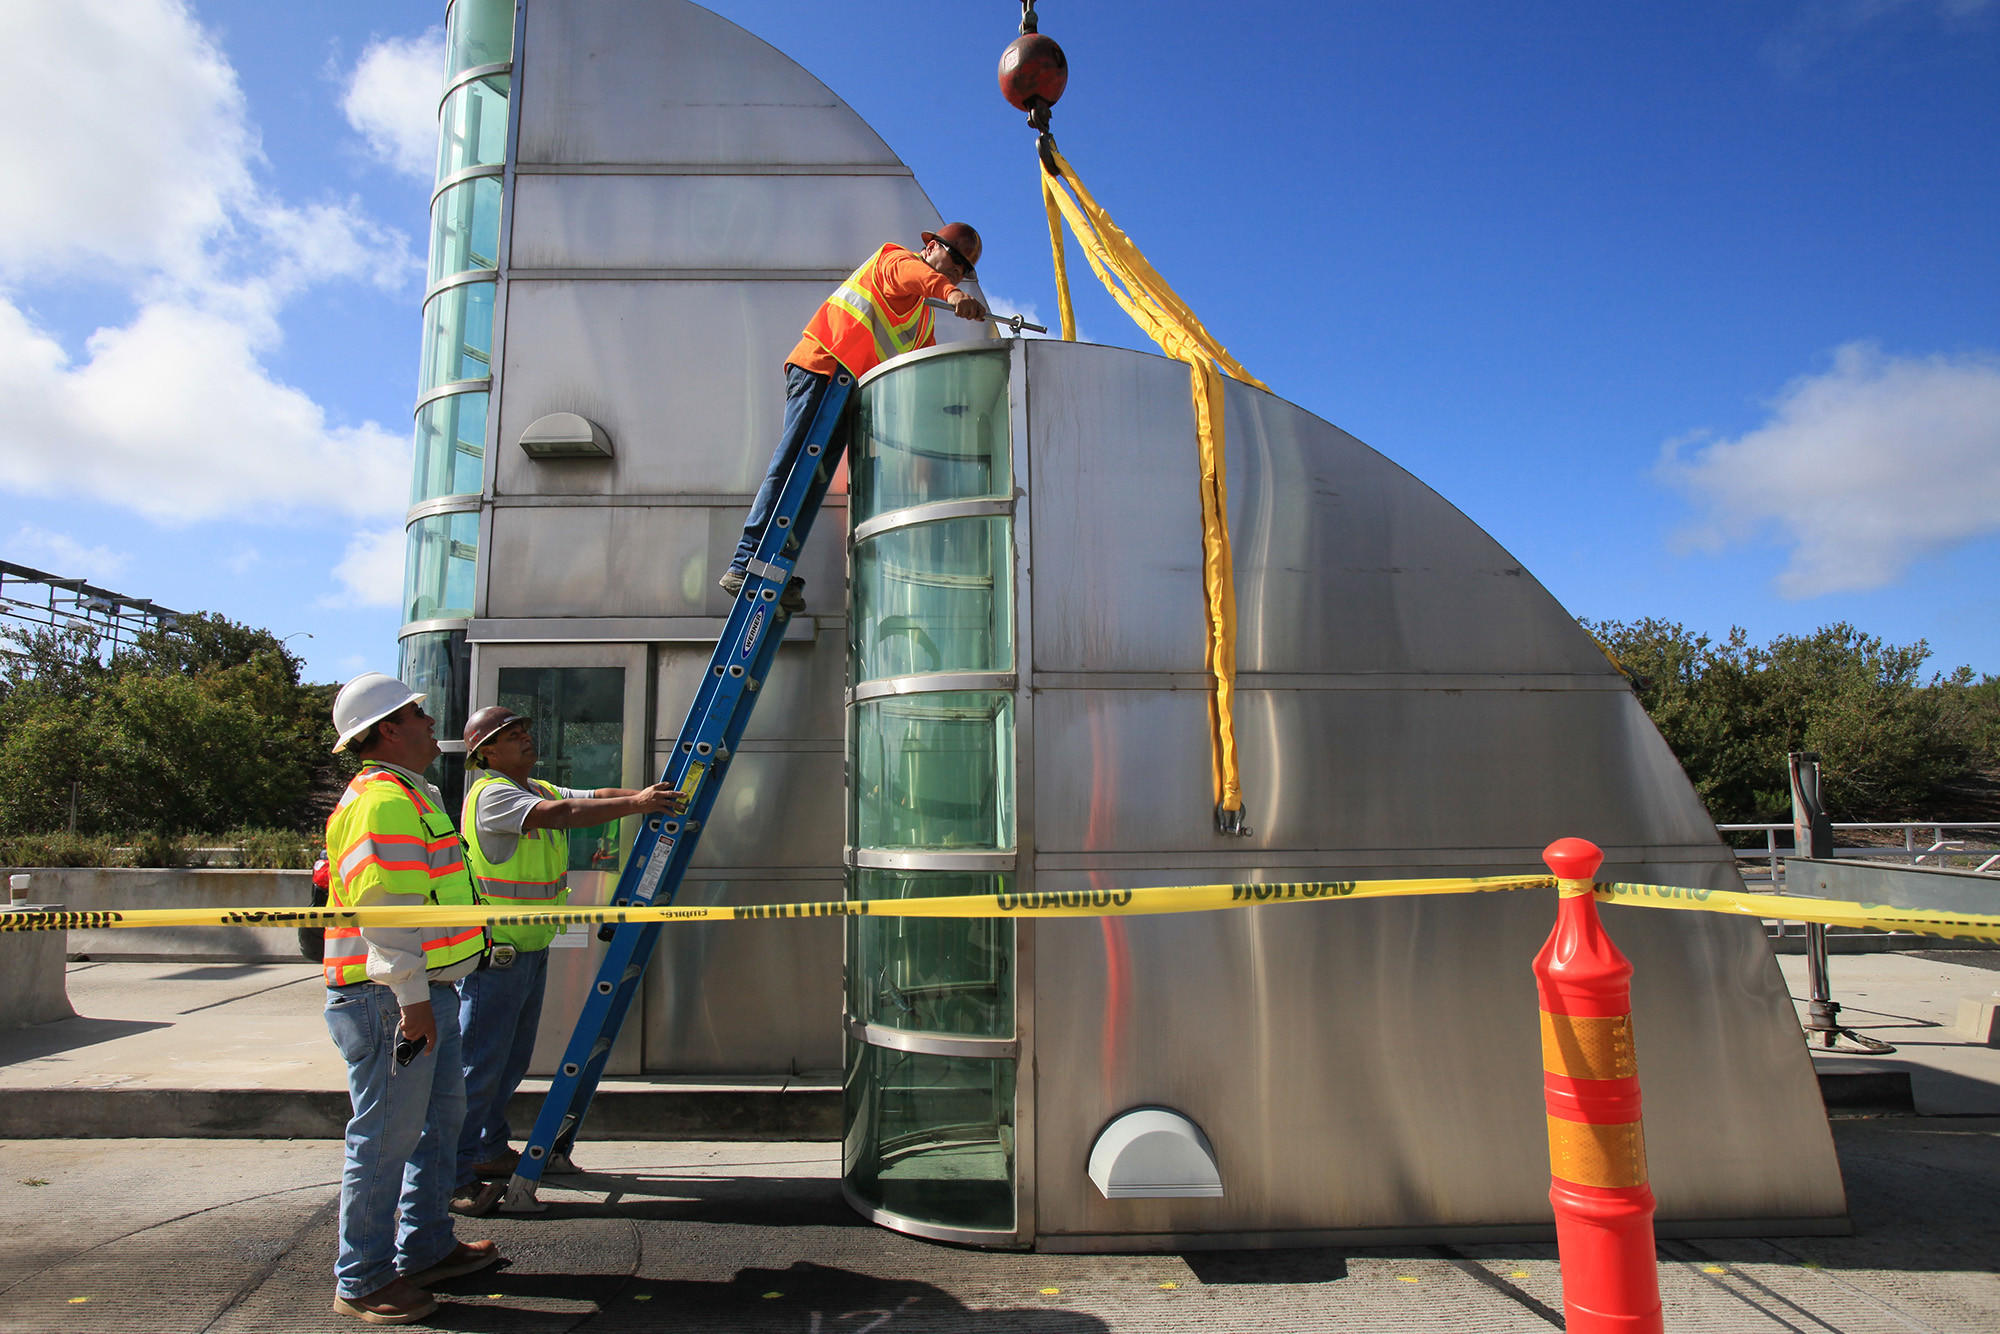 Employees from Ortiz Enterprises prepare to move the top half of a toll booth onto of a truck bed at Catalina View Mainline Toll Plaza along California State Route 73.